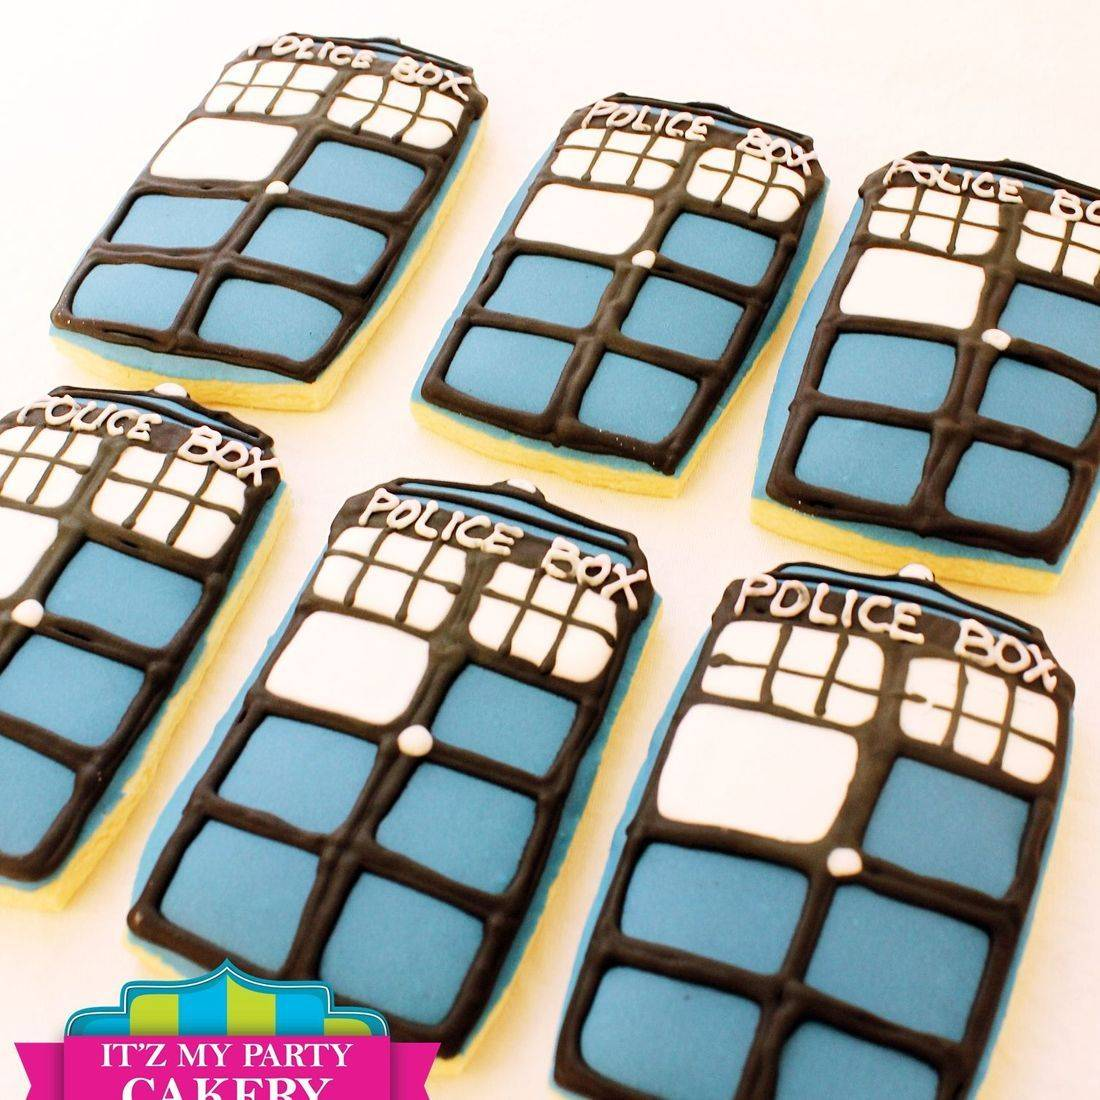 Police Box cookies Milwaukee